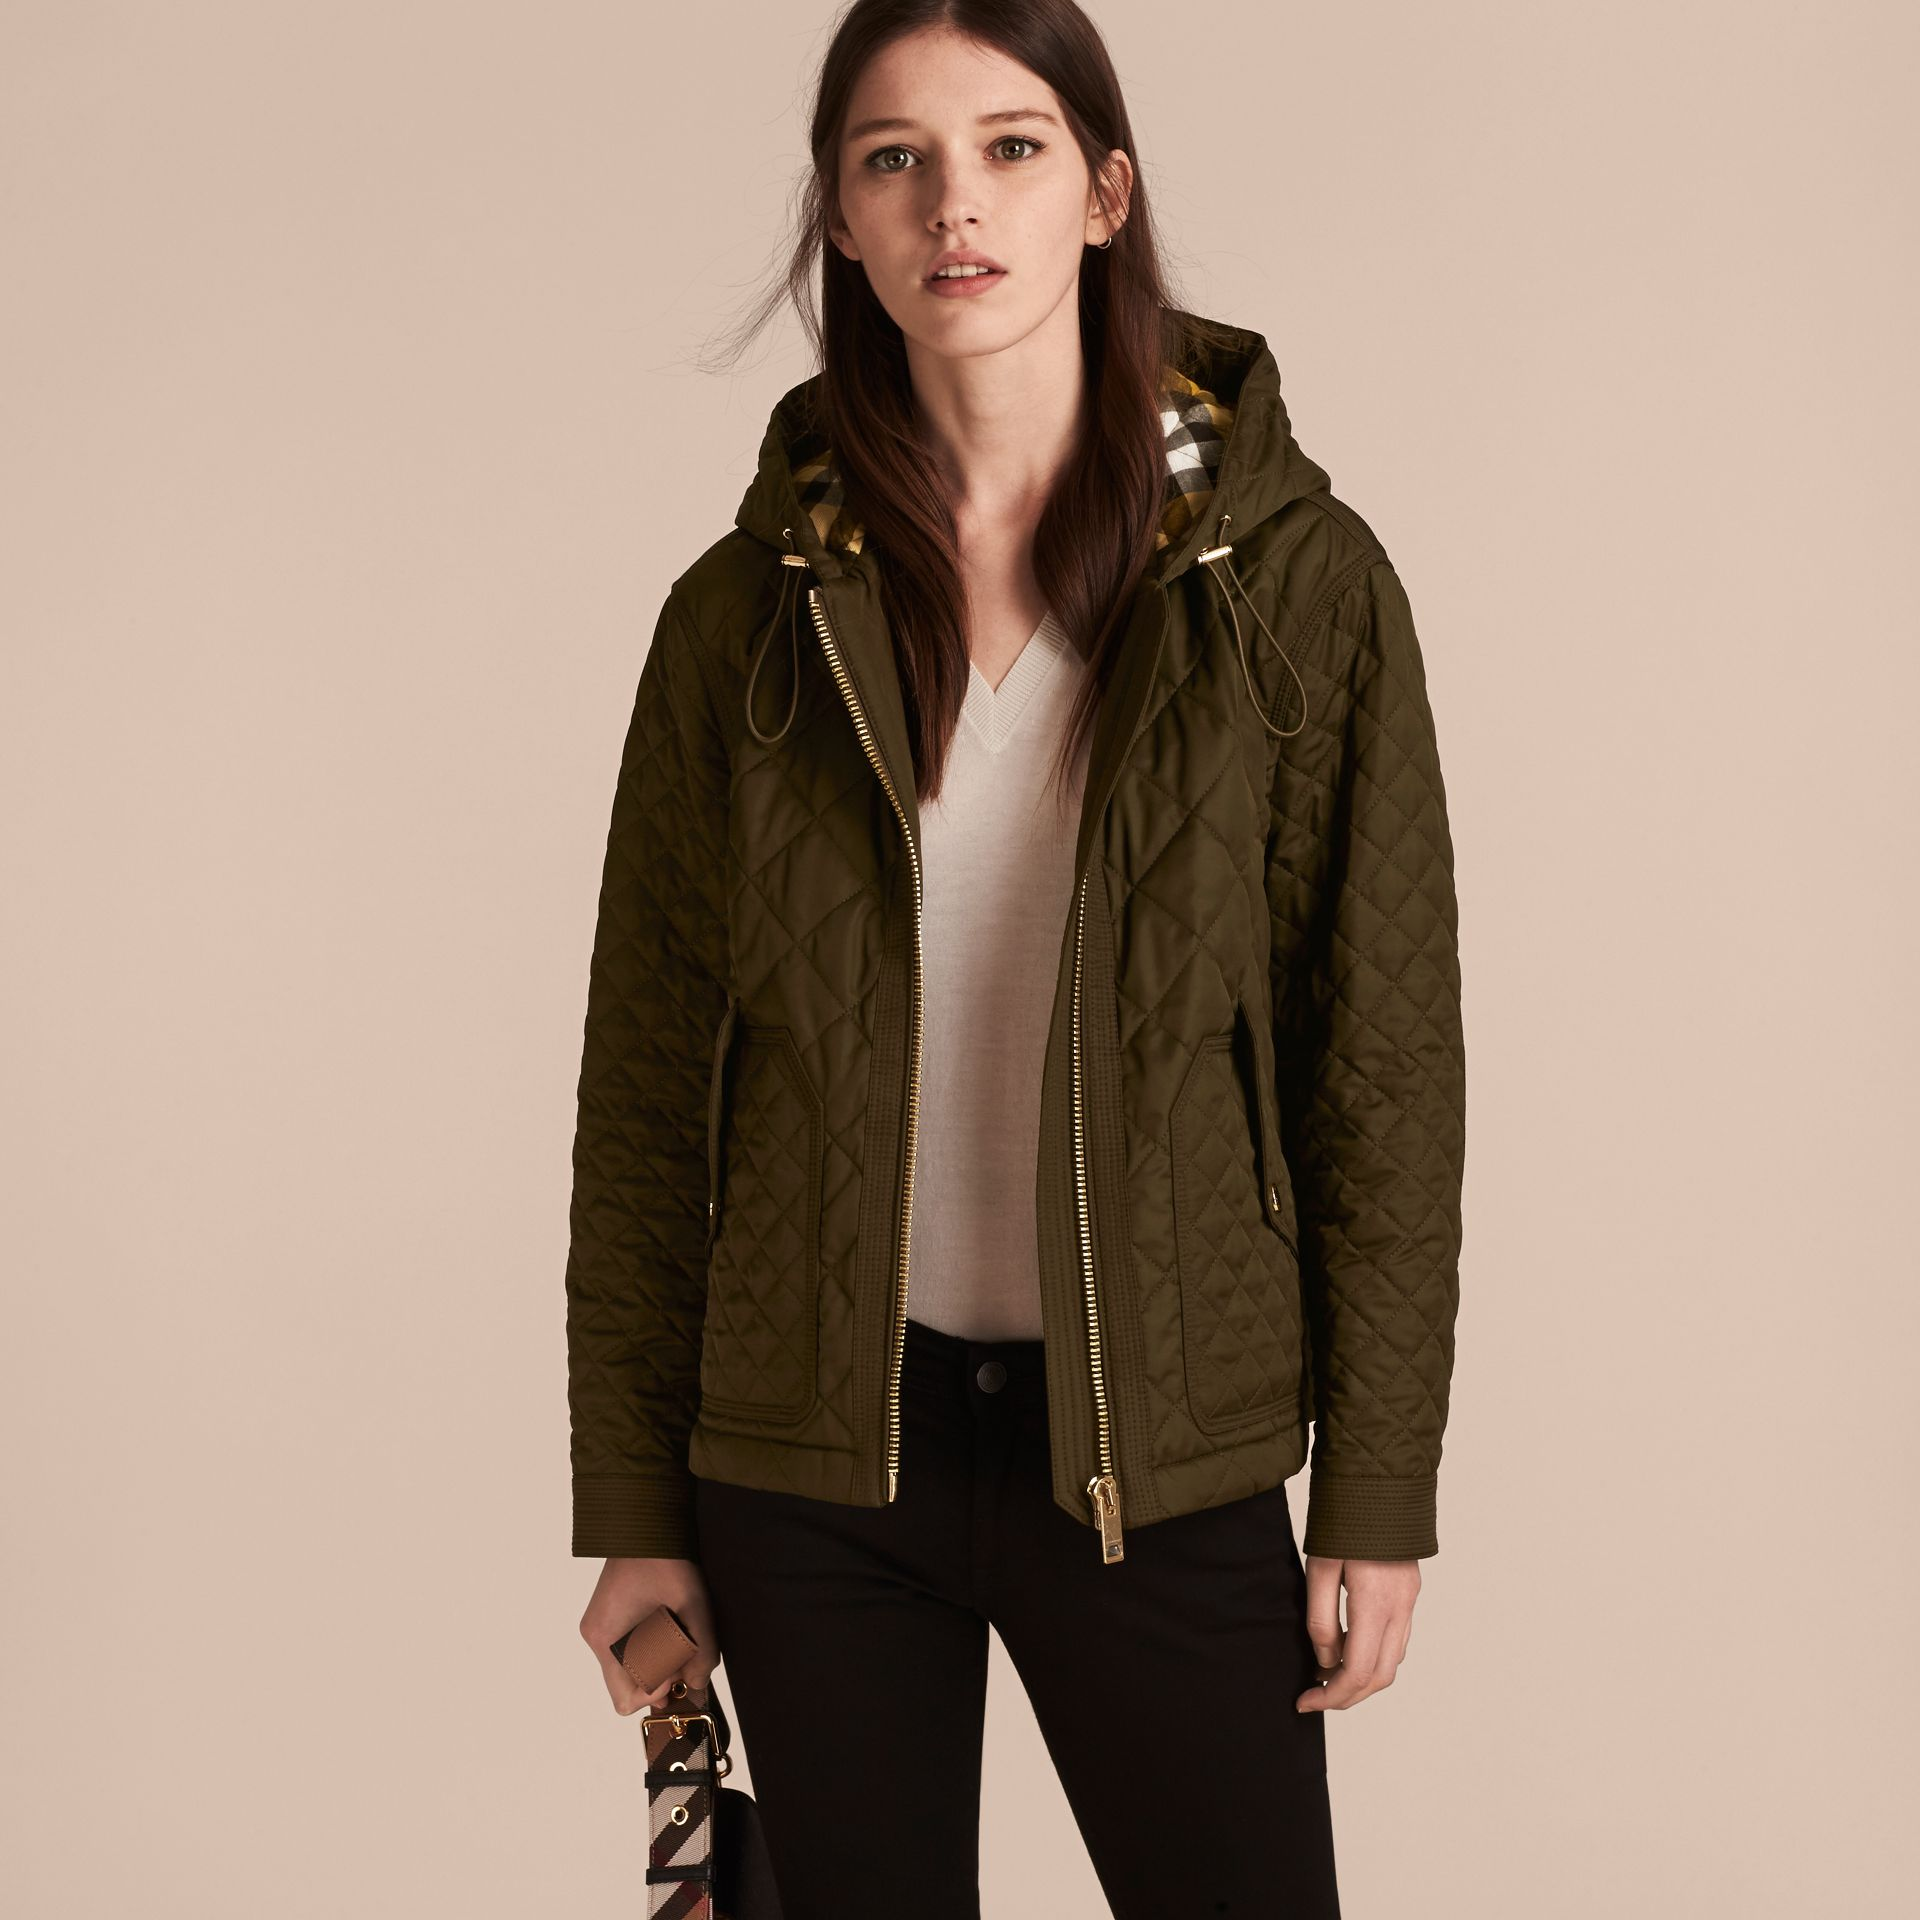 Diamond Quilted Hooded Jacket with Check Lining Dark Olive - gallery image 6